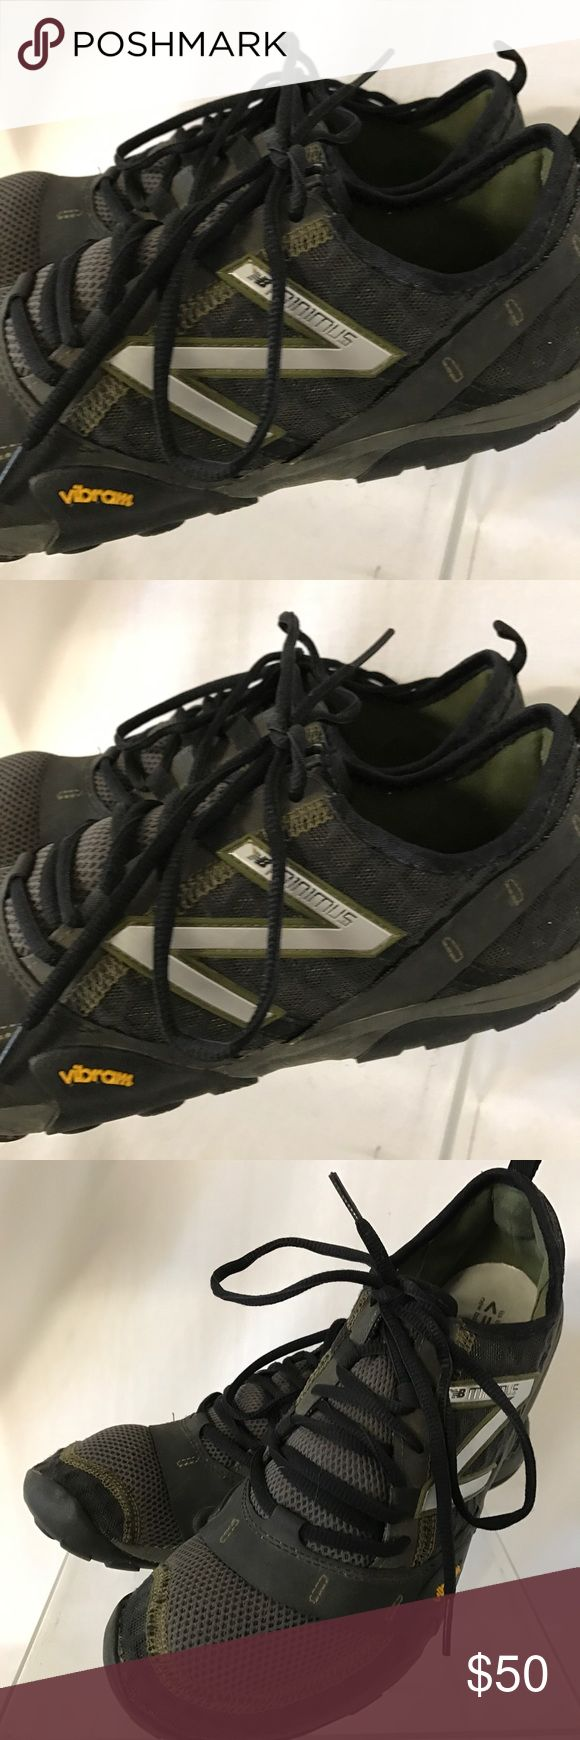 New balance minimum men's shoes size 10 Looks nice and comfy just has some used and minor dirt. New Balance Shoes Sneakers